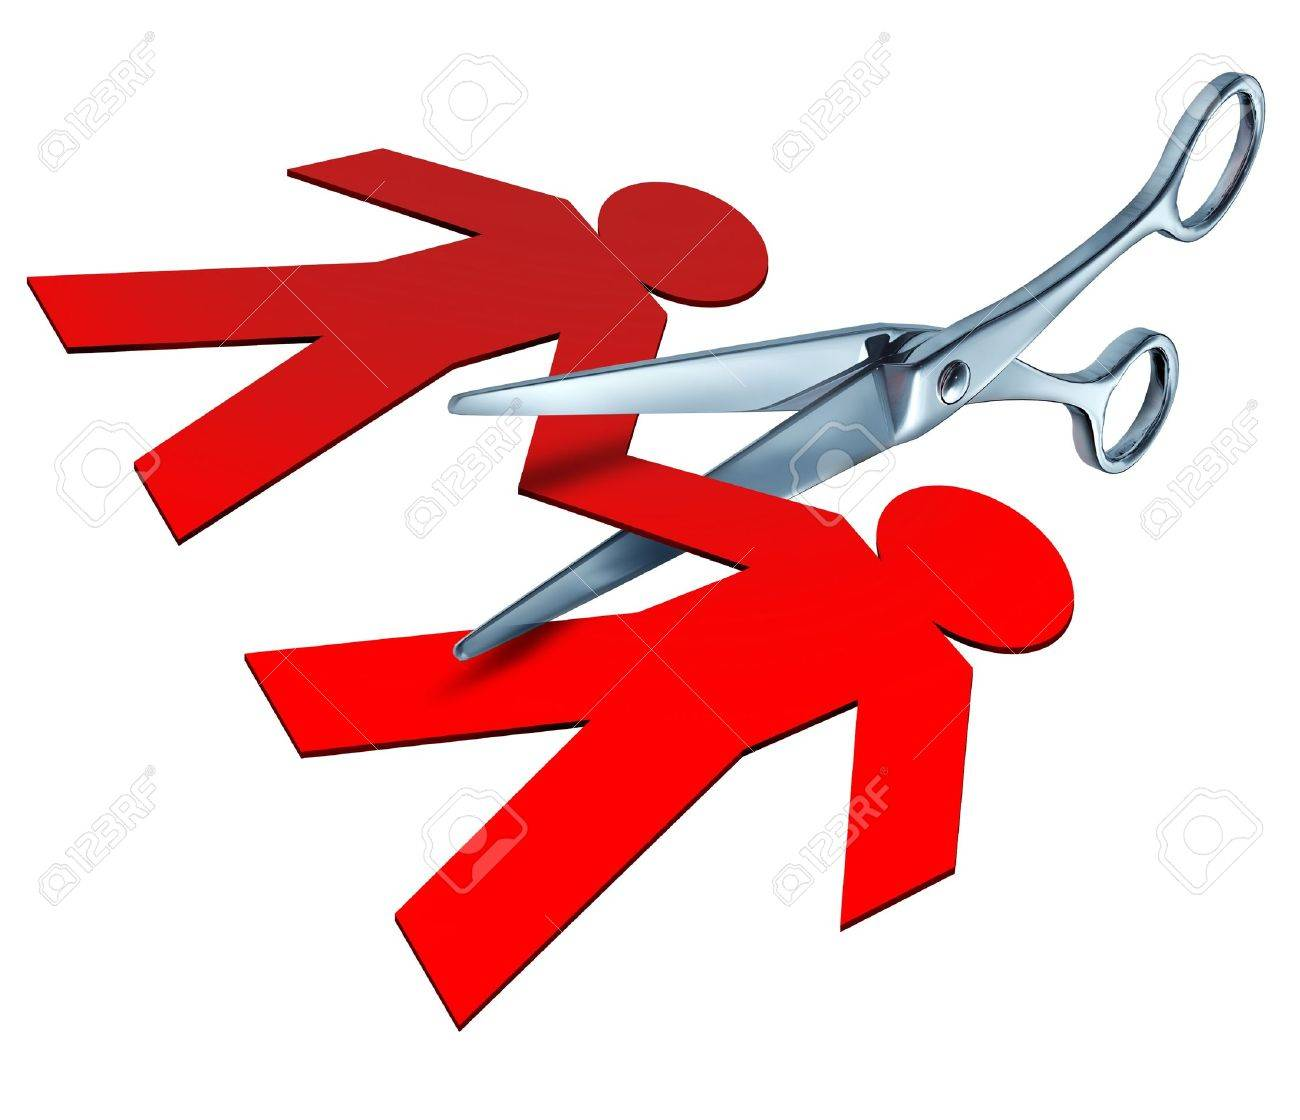 Divorce and separation represented by a pair of metal scissors cutting into a red paper cut out of a couple of people representing the break up and cutting the ties of an ending relationship between a husband and a wife. Stock Photo - 10892150